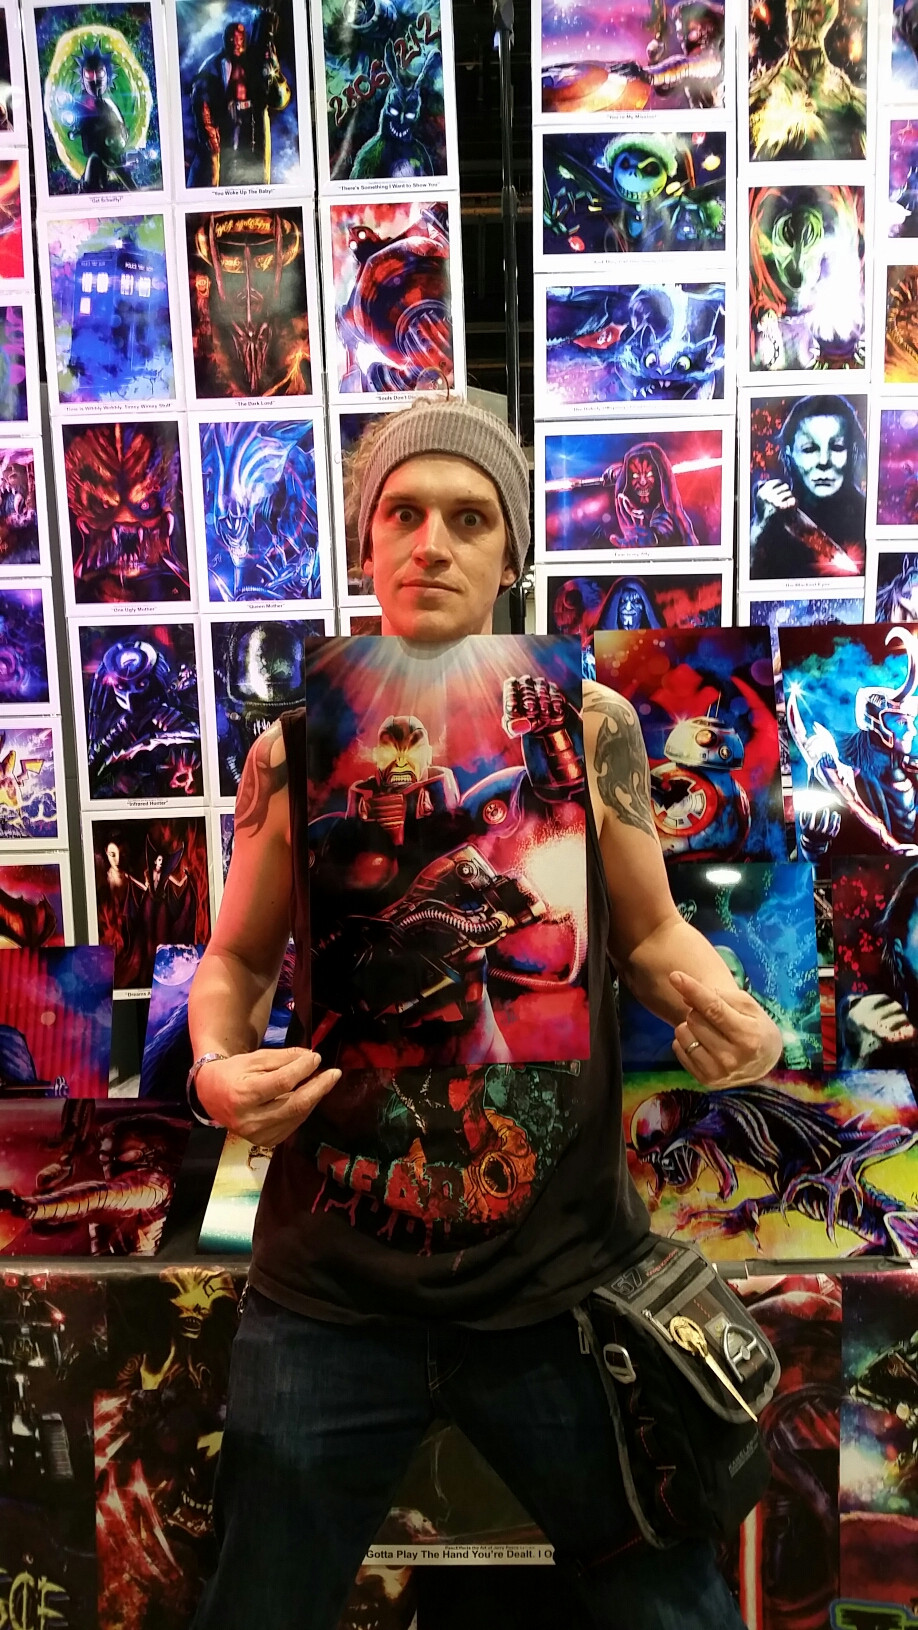 Jay Mewes bought Jerry's Apocalypse piece at Wizard World Las Vegas!